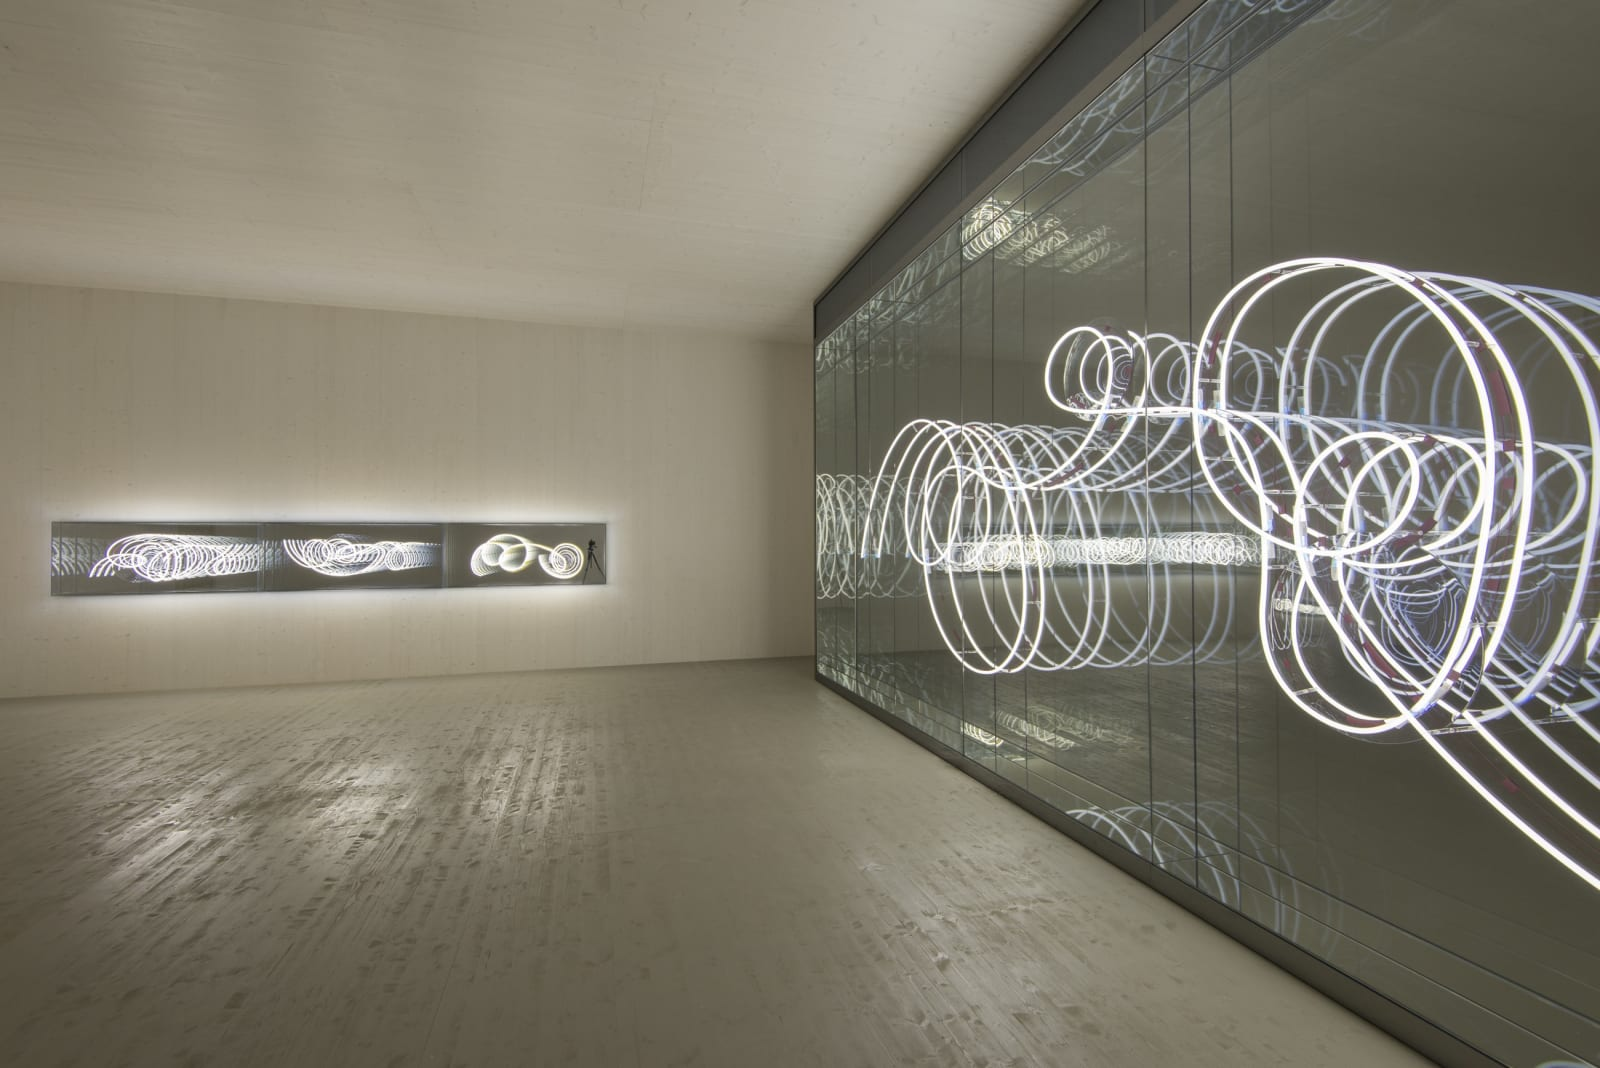 Installation view Infinity and Beyond Austrian Pavilion, 57th Venice Biennale (2017)